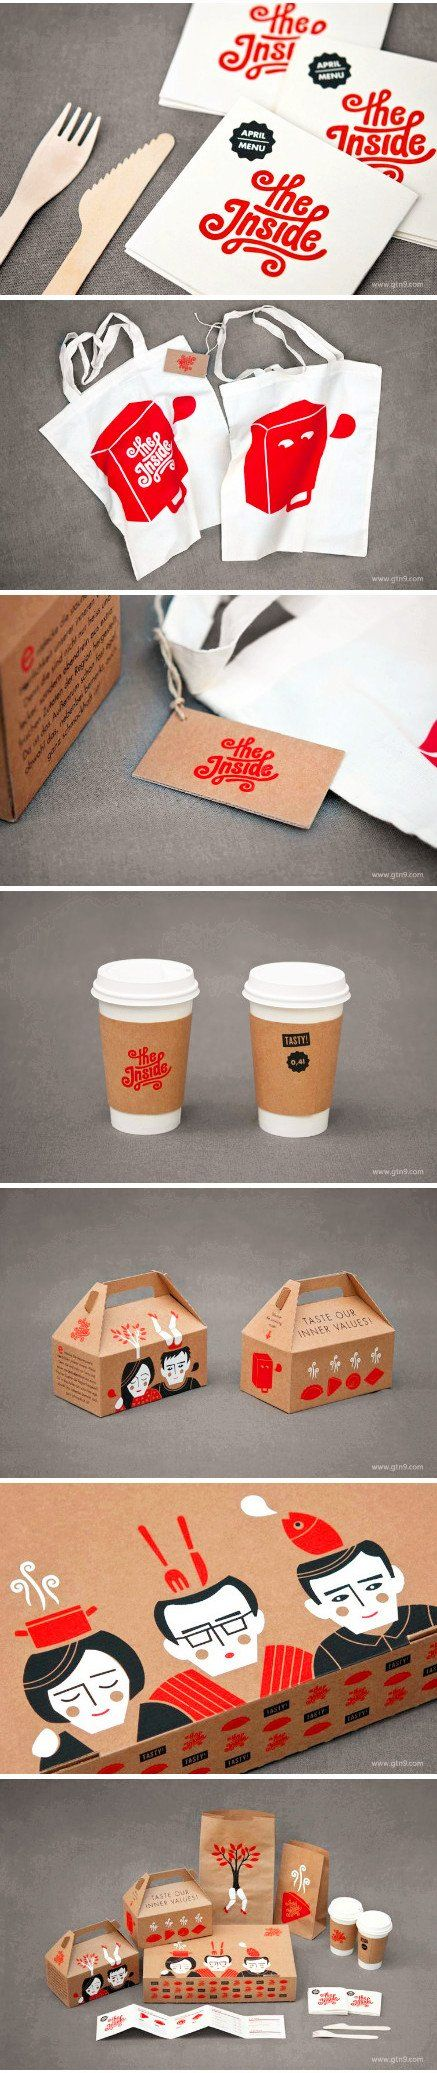 diseño gráfico logo diferentes soportes the inside 品牌形象设计#packaging #branding #marketing PD